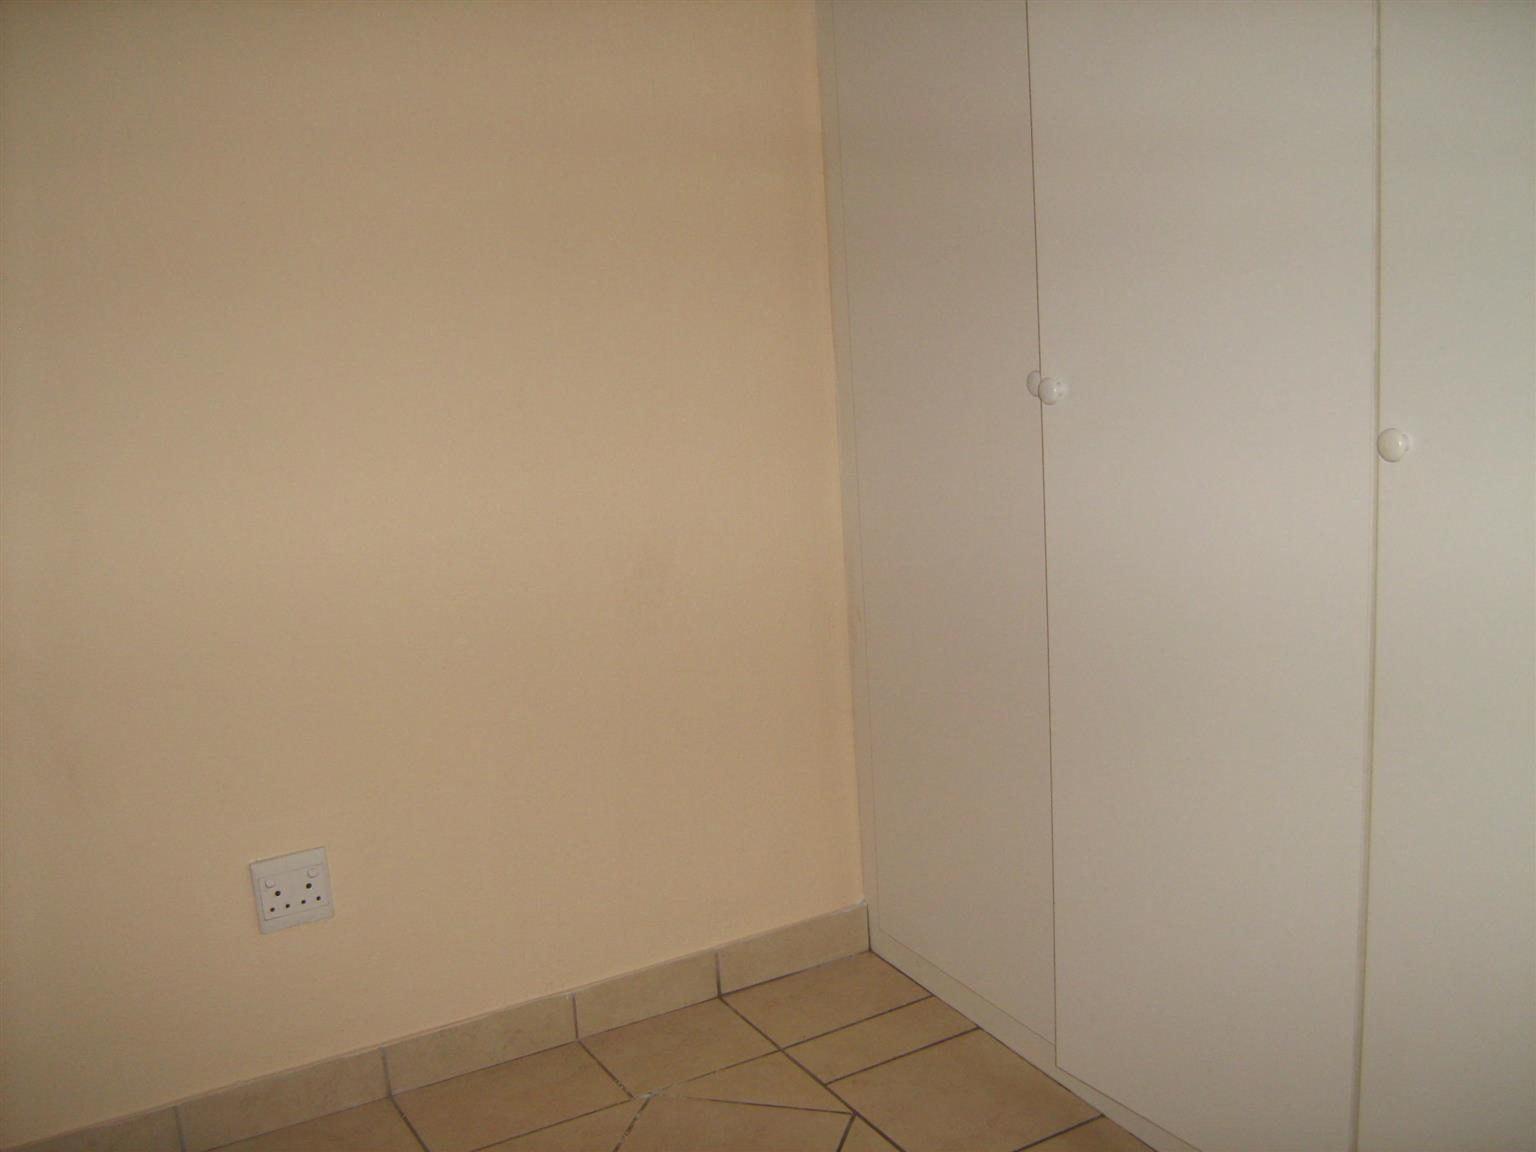 Spacious 2 Bedroom Apartment for sale in TILEBA , PRETORIA. Need and well managed complex